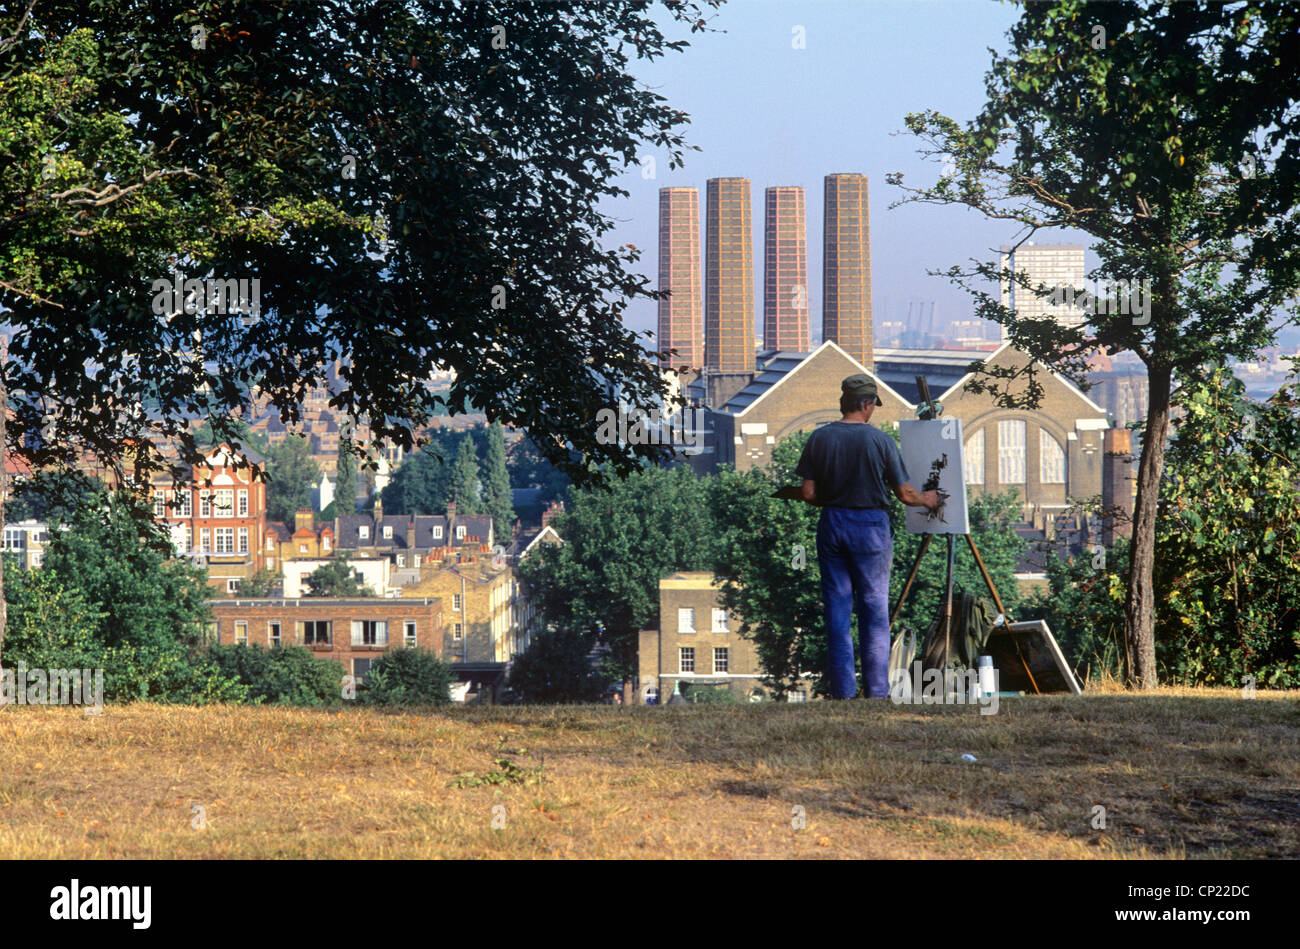 Great Britain, London, painter in Greenwich Park with view on powerplant - Stock Image